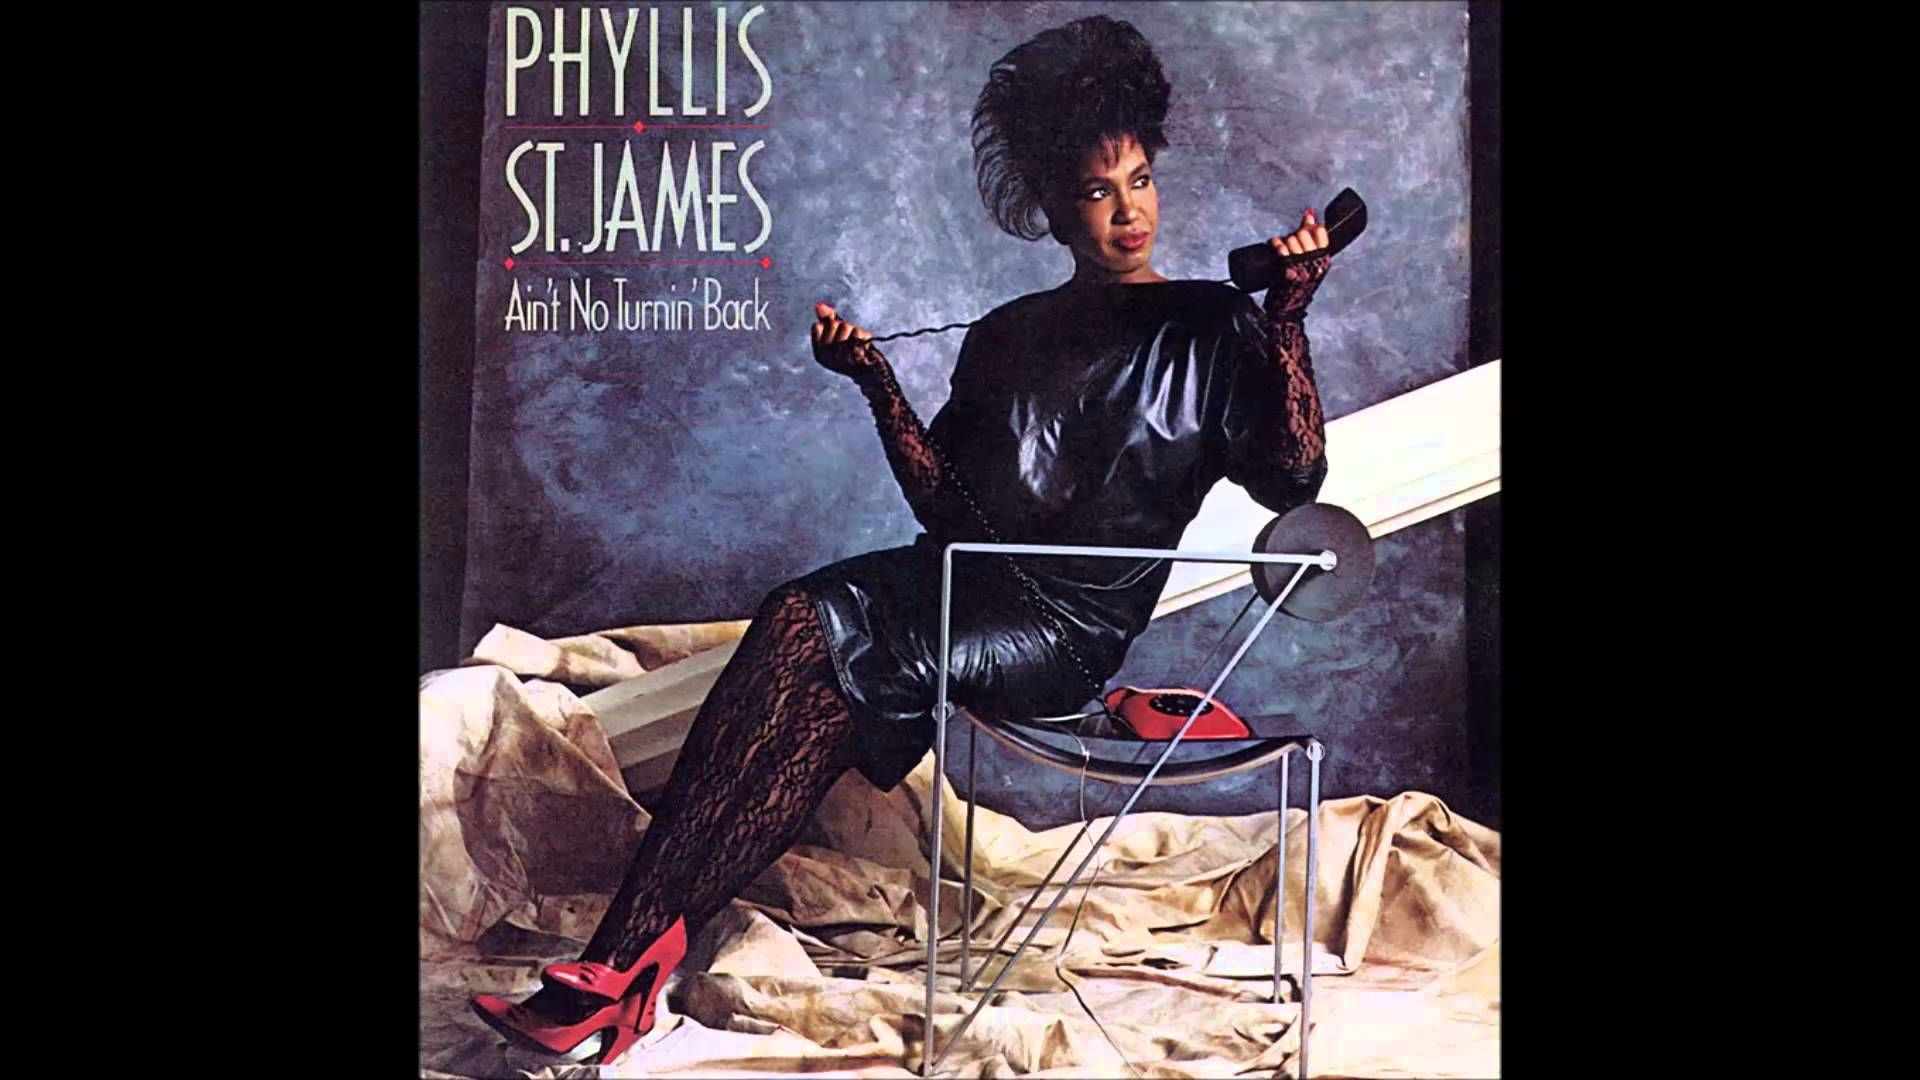 PHYLLIS St  JAMES / Ain't No Turnin' Back